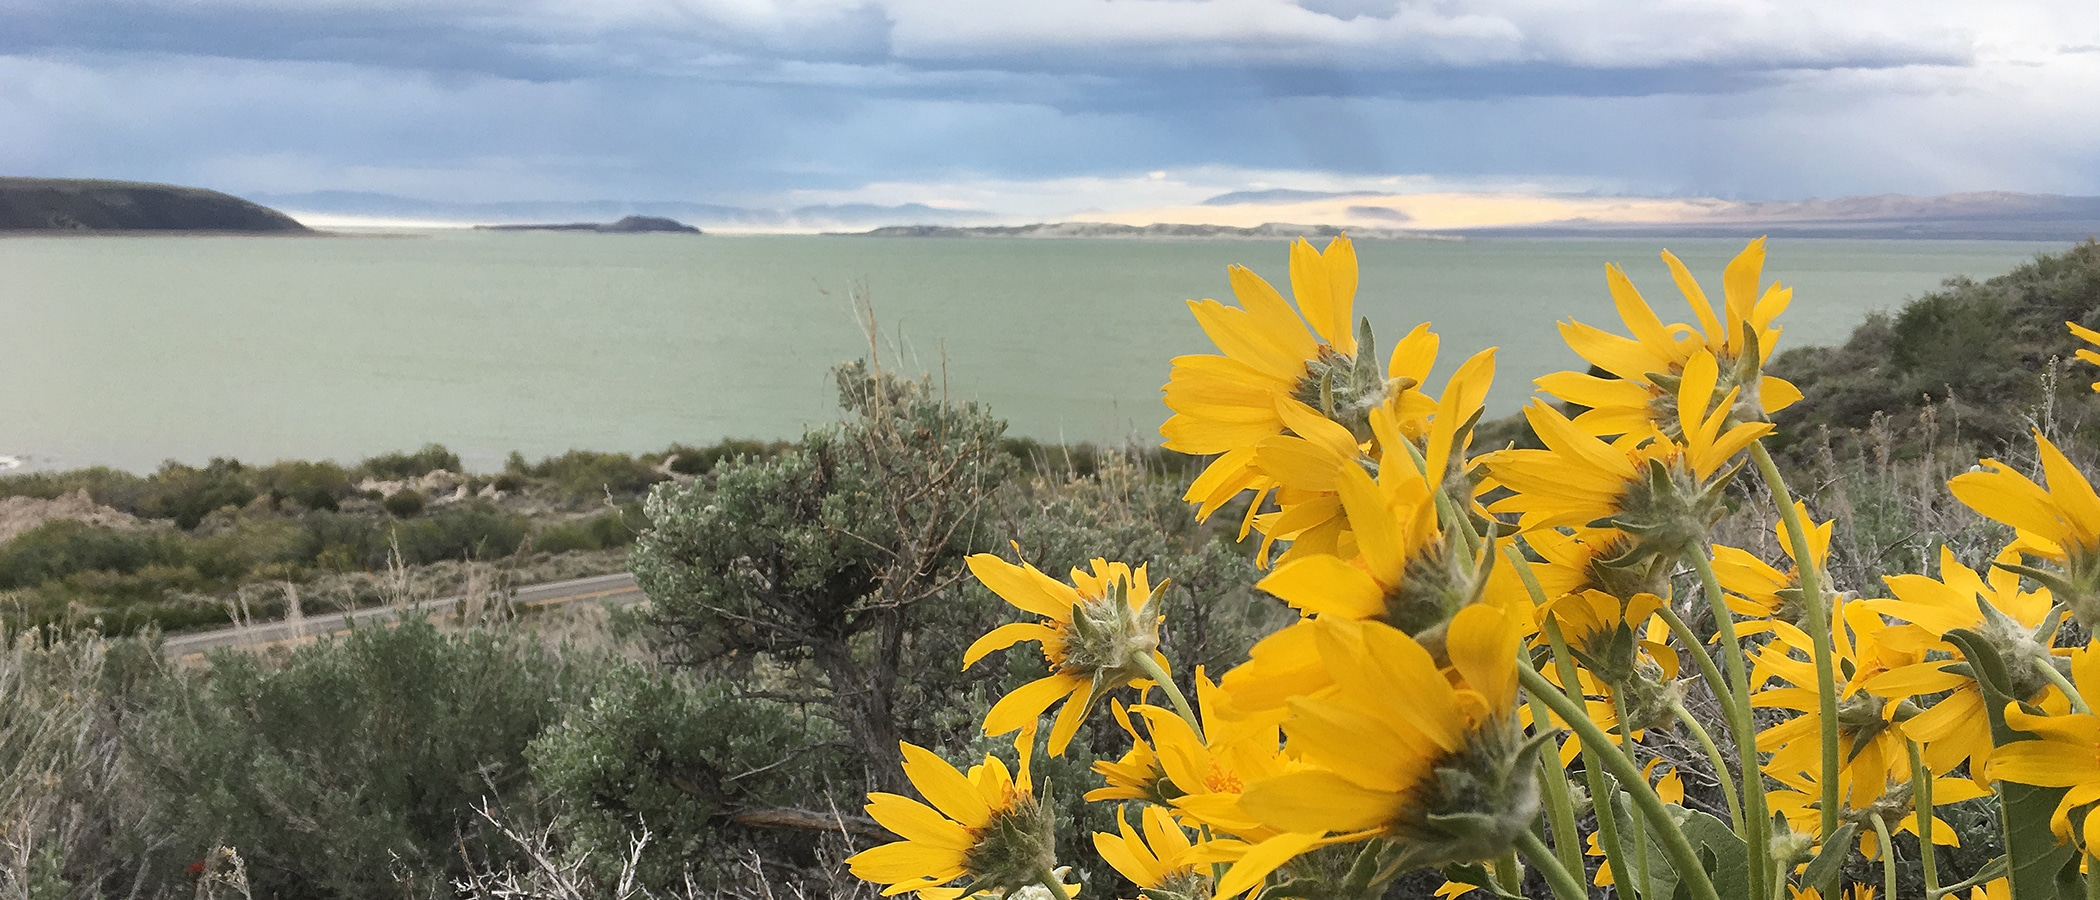 A close up of yellow wildflowers overlooking the teal waters of Mono Lake on a cloudy day.